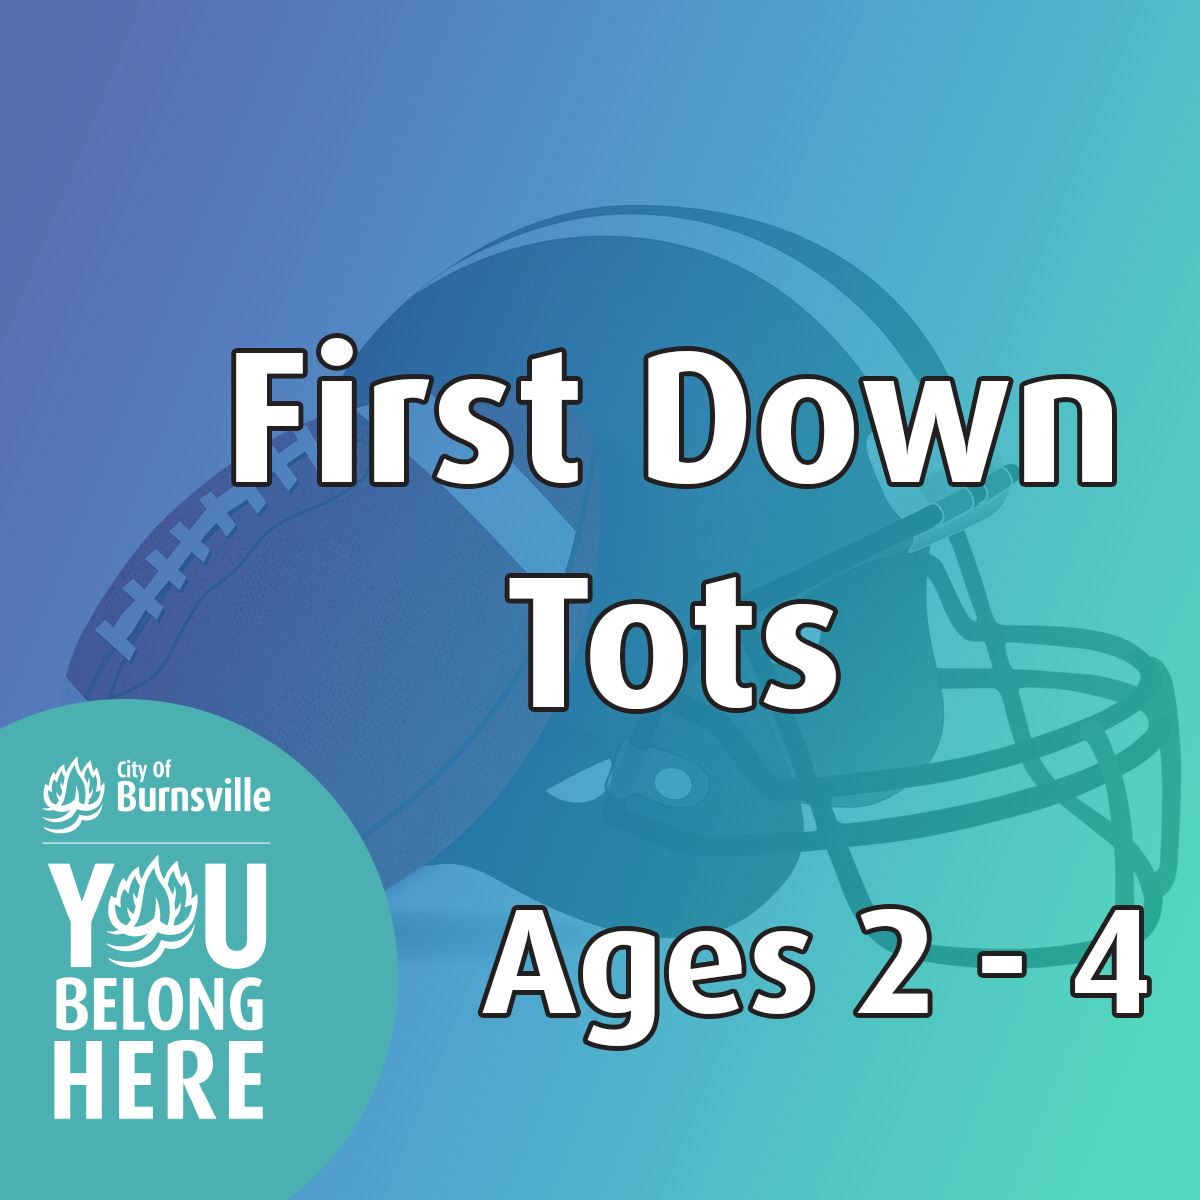 Helmet and football behind a gradient teal semi-transparent background. Text New! First Down Tot